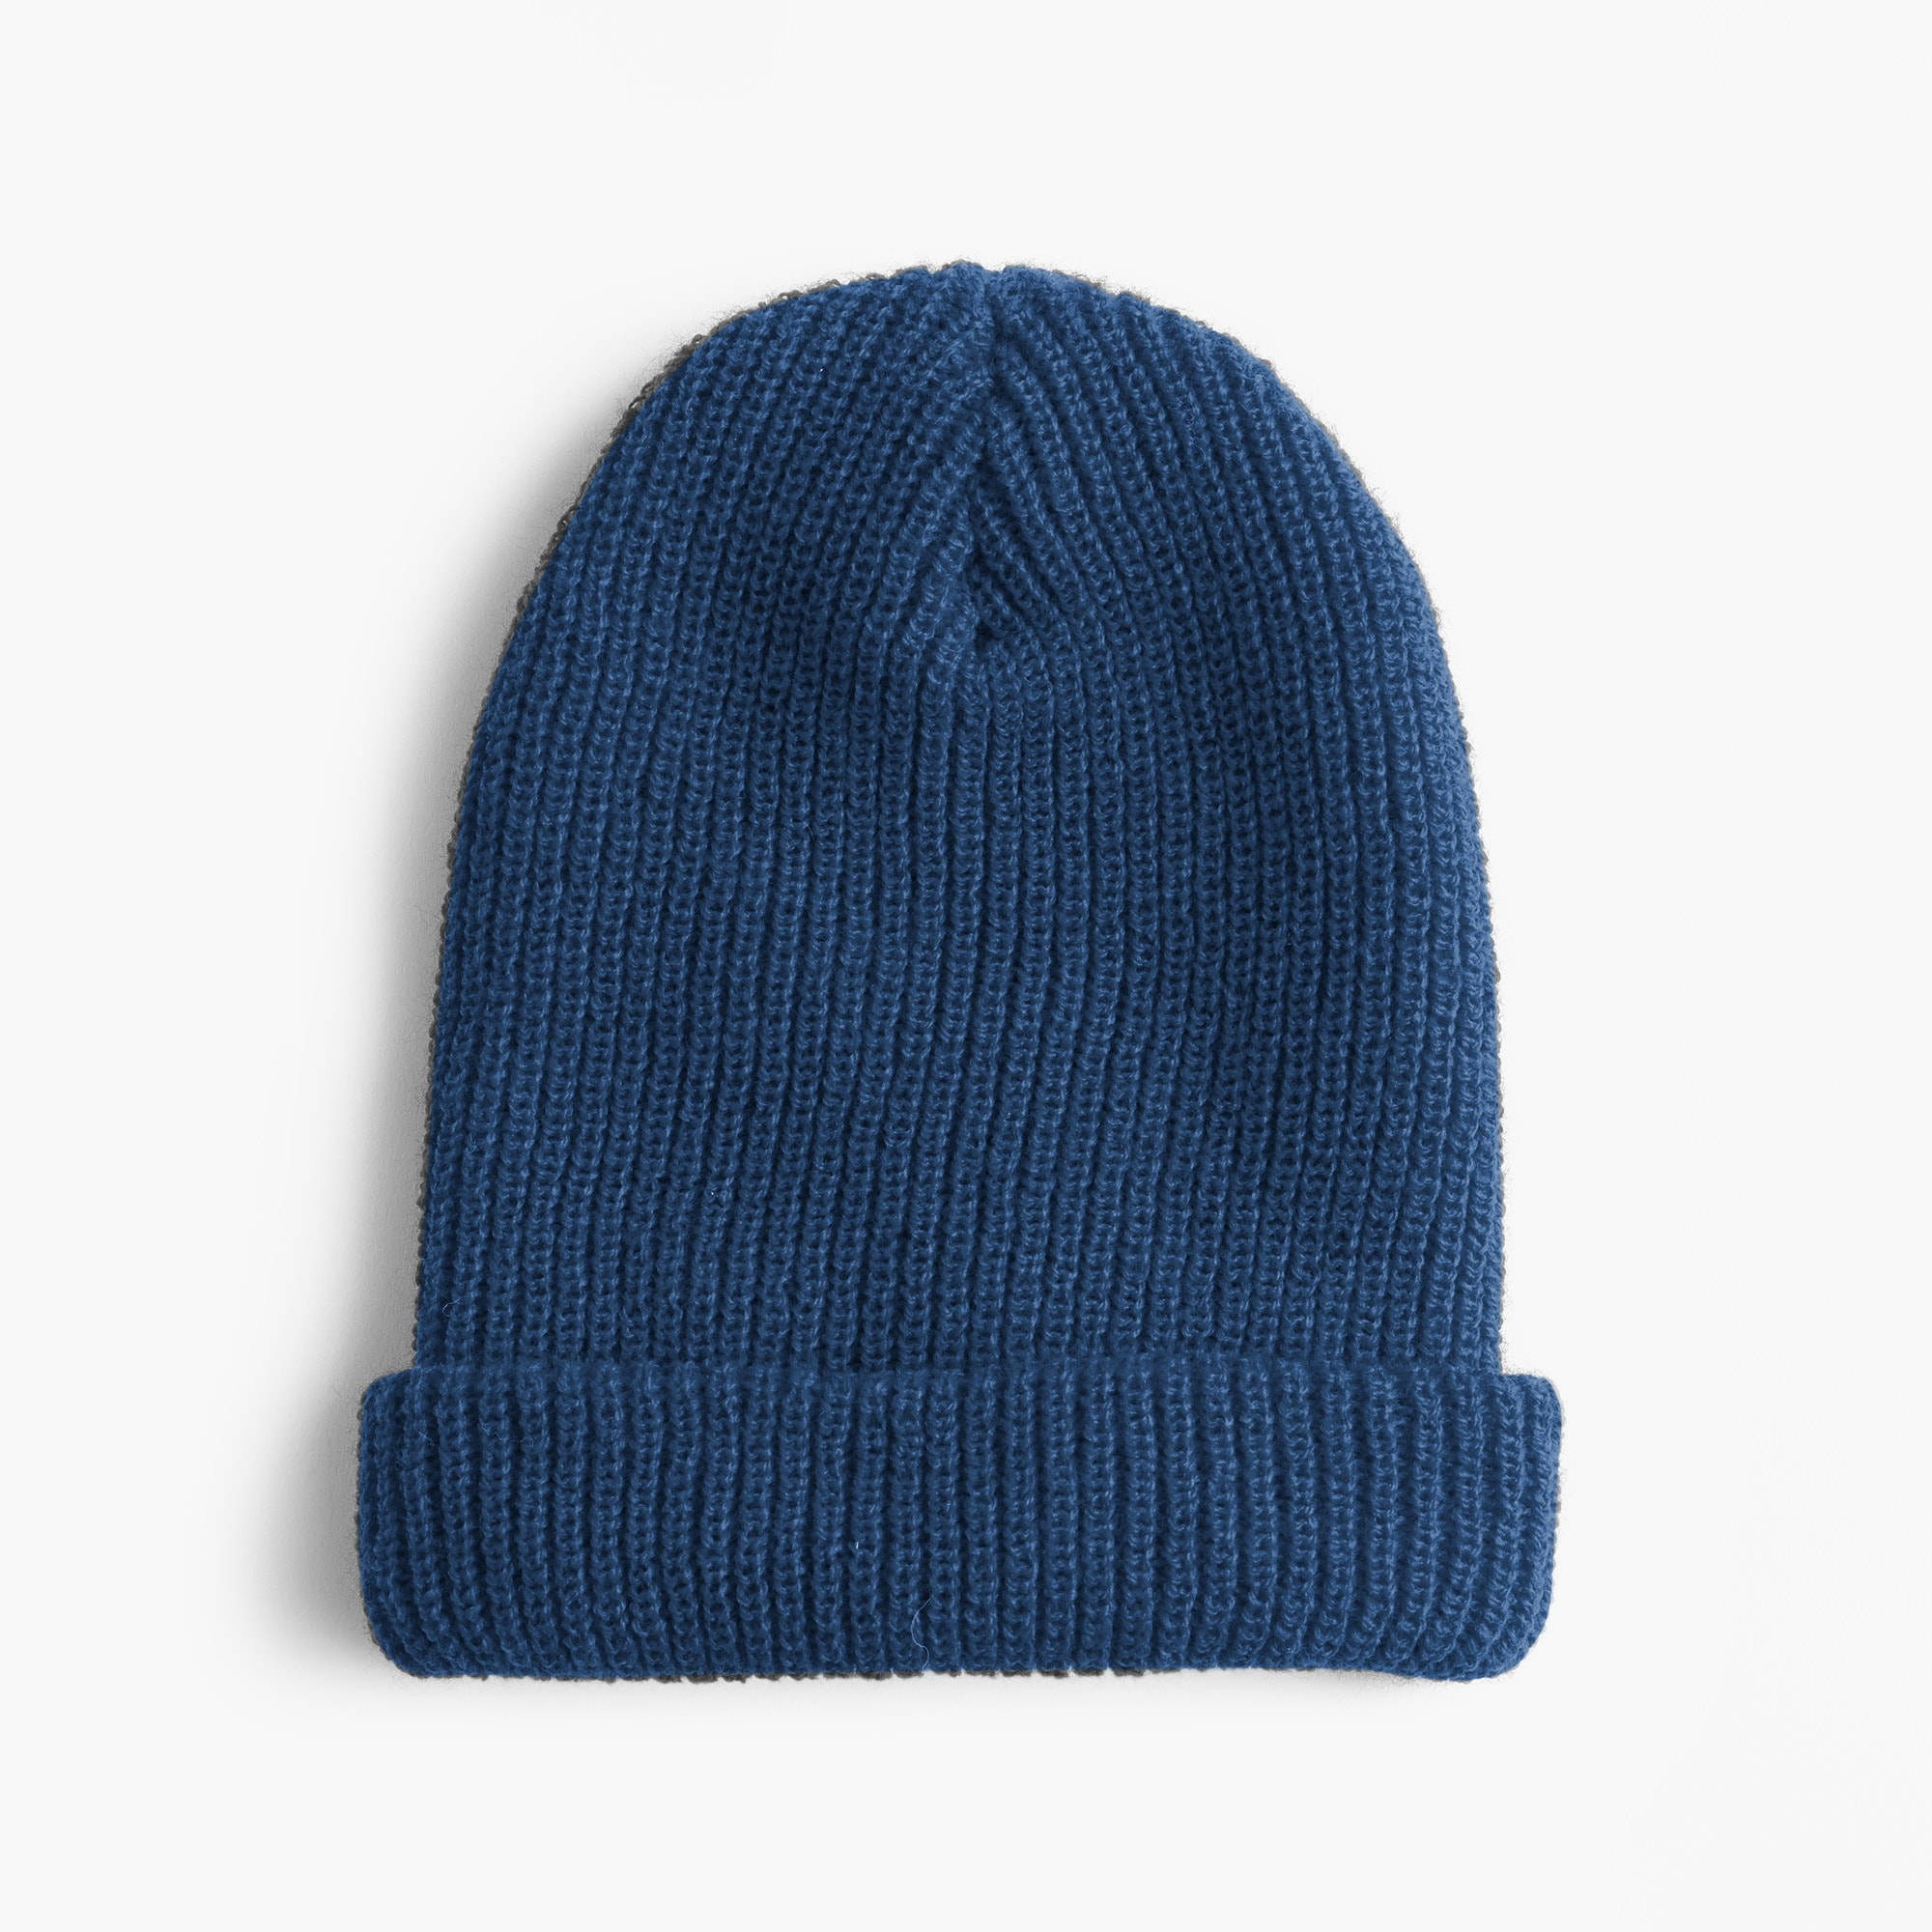 Ribbed beanie in solid